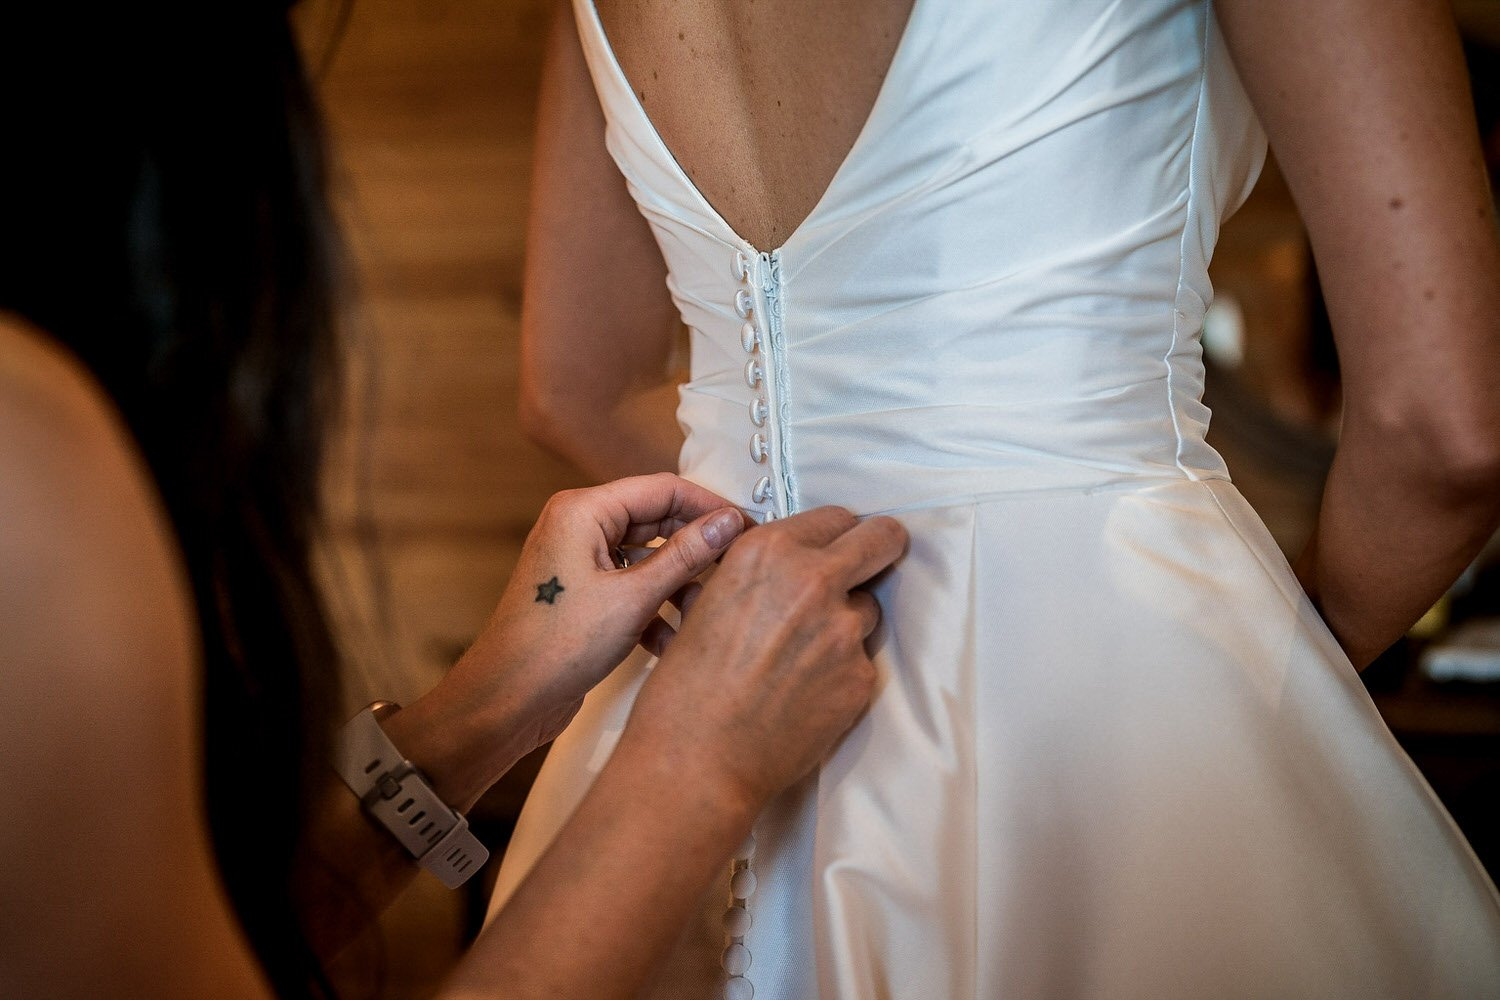 Foxton Lock Lodges Lockwood Weddings Photography Bride being buttoned into her wedding dress by her maid of honour